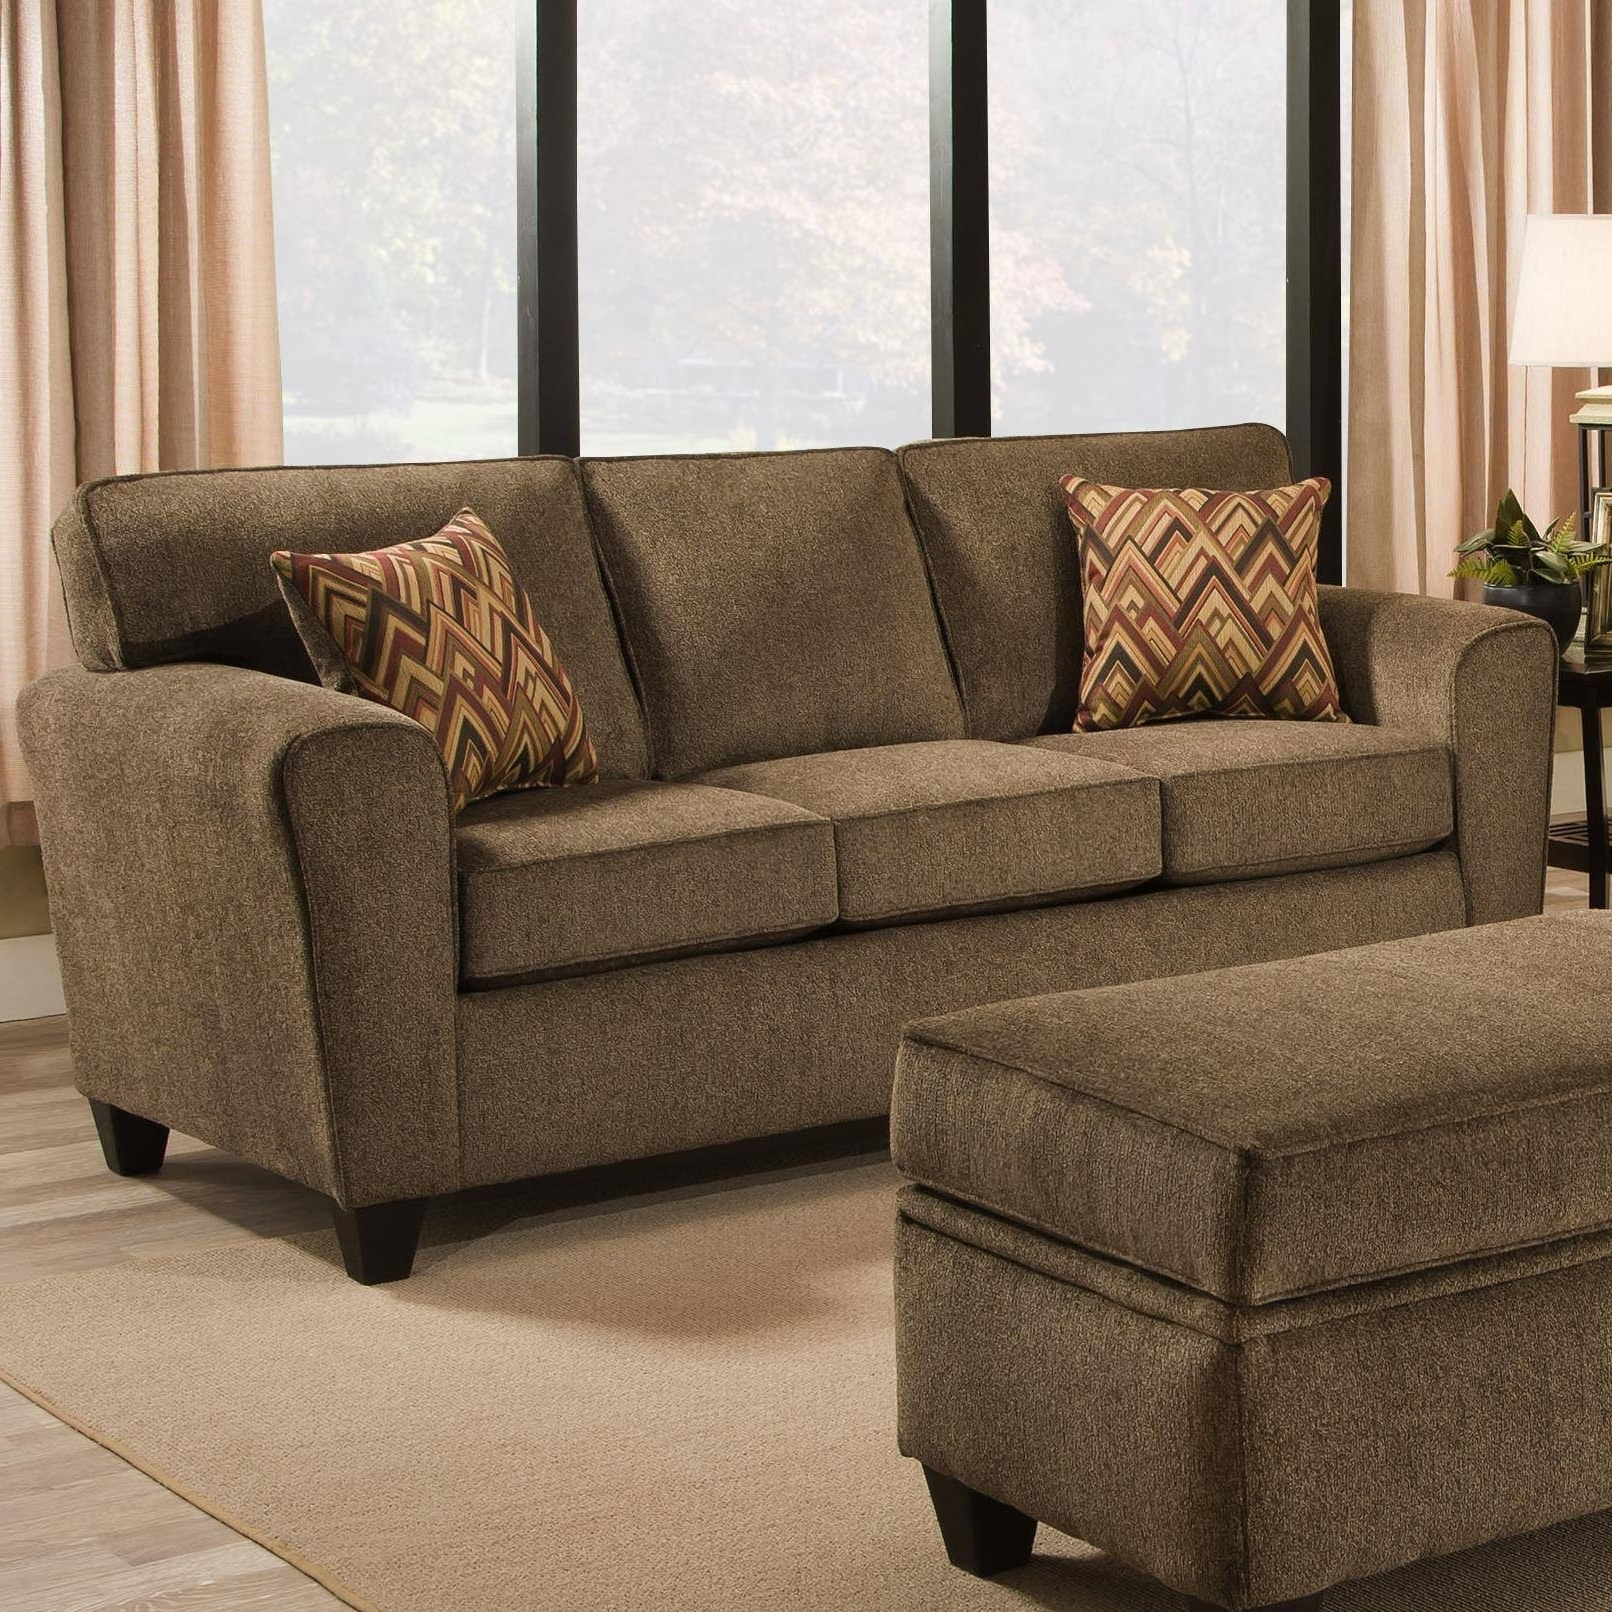 Preferred Furniture : Ethan Allen Down Filled Sofa Beautiful Sectional Sofas Regarding Down Filled Sofas (View 6 of 20)